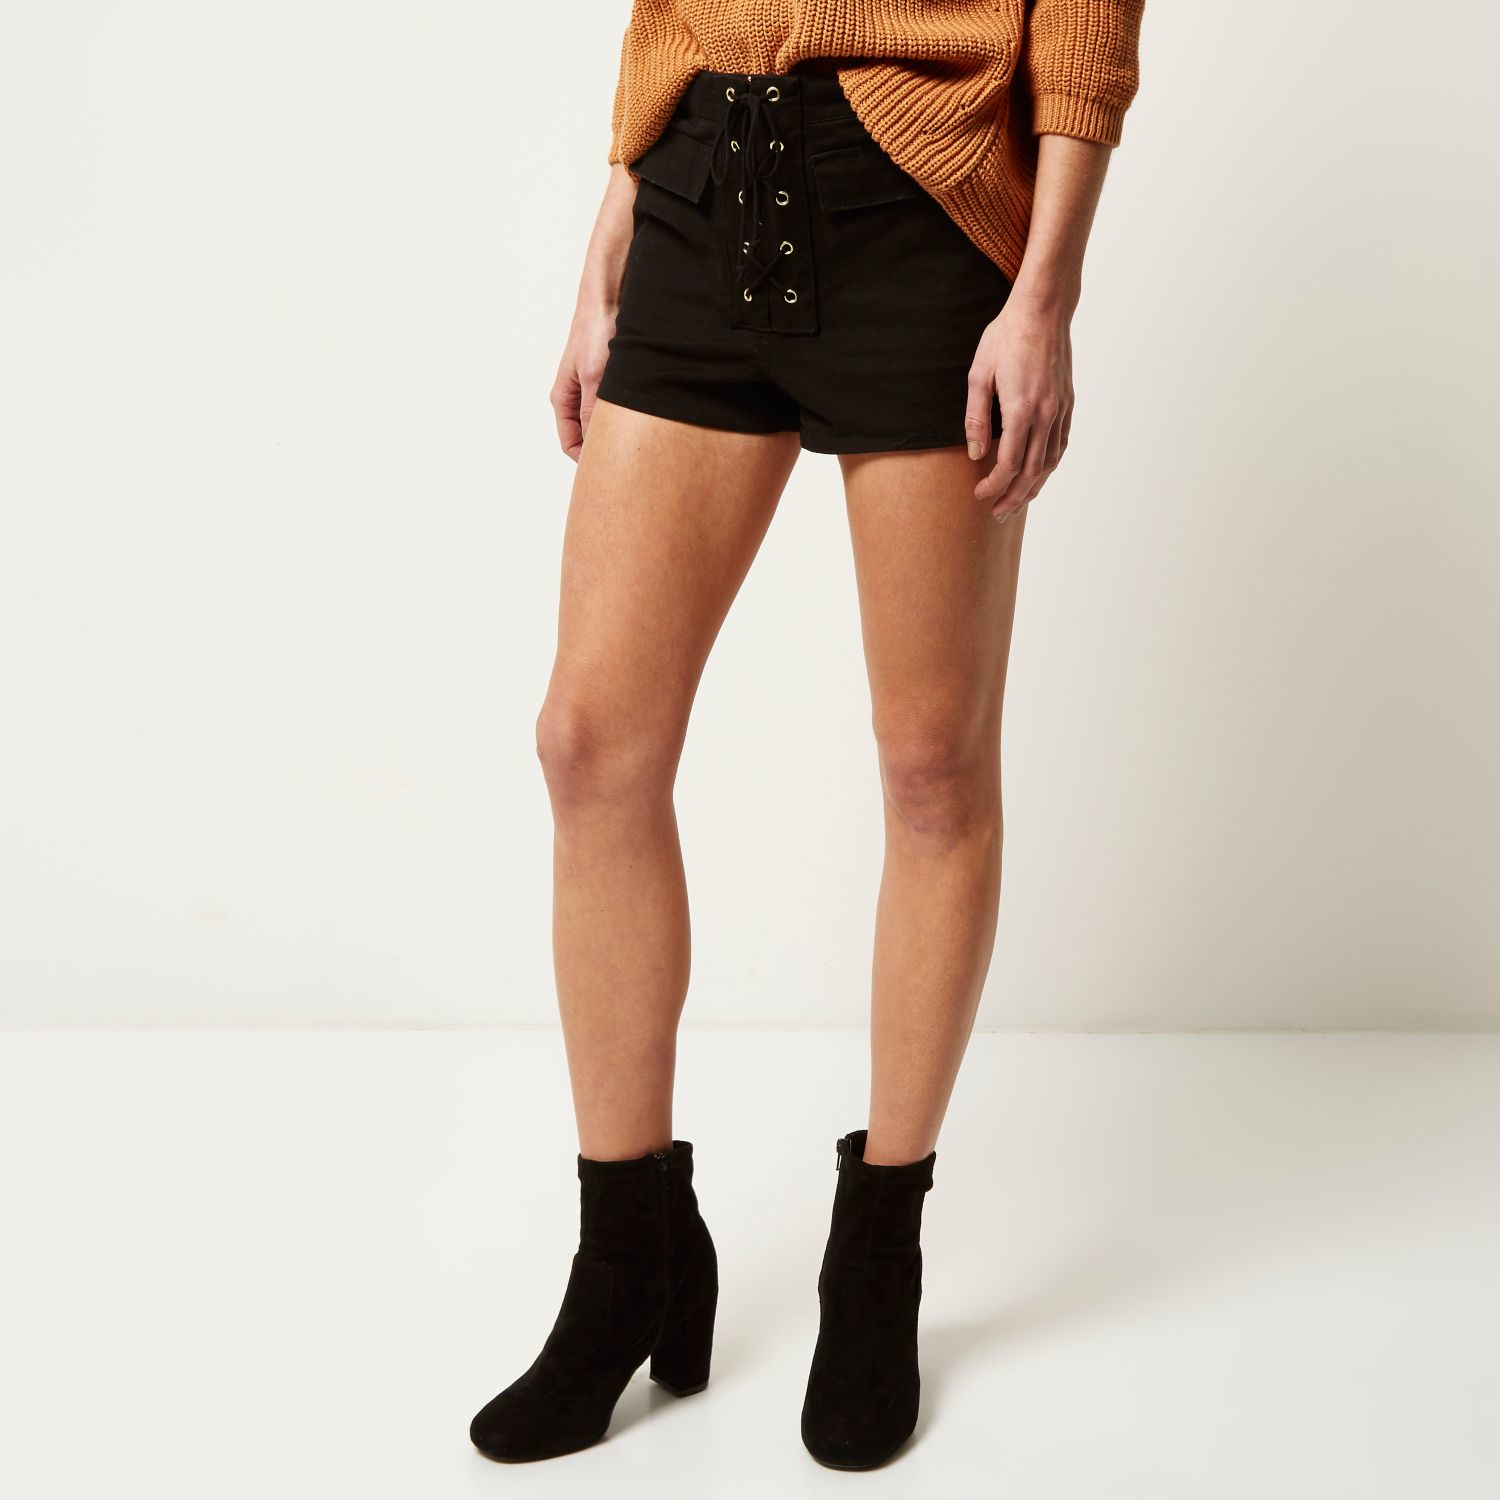 River island Lace-Up High-Waisted Shorts in Natural | Lyst